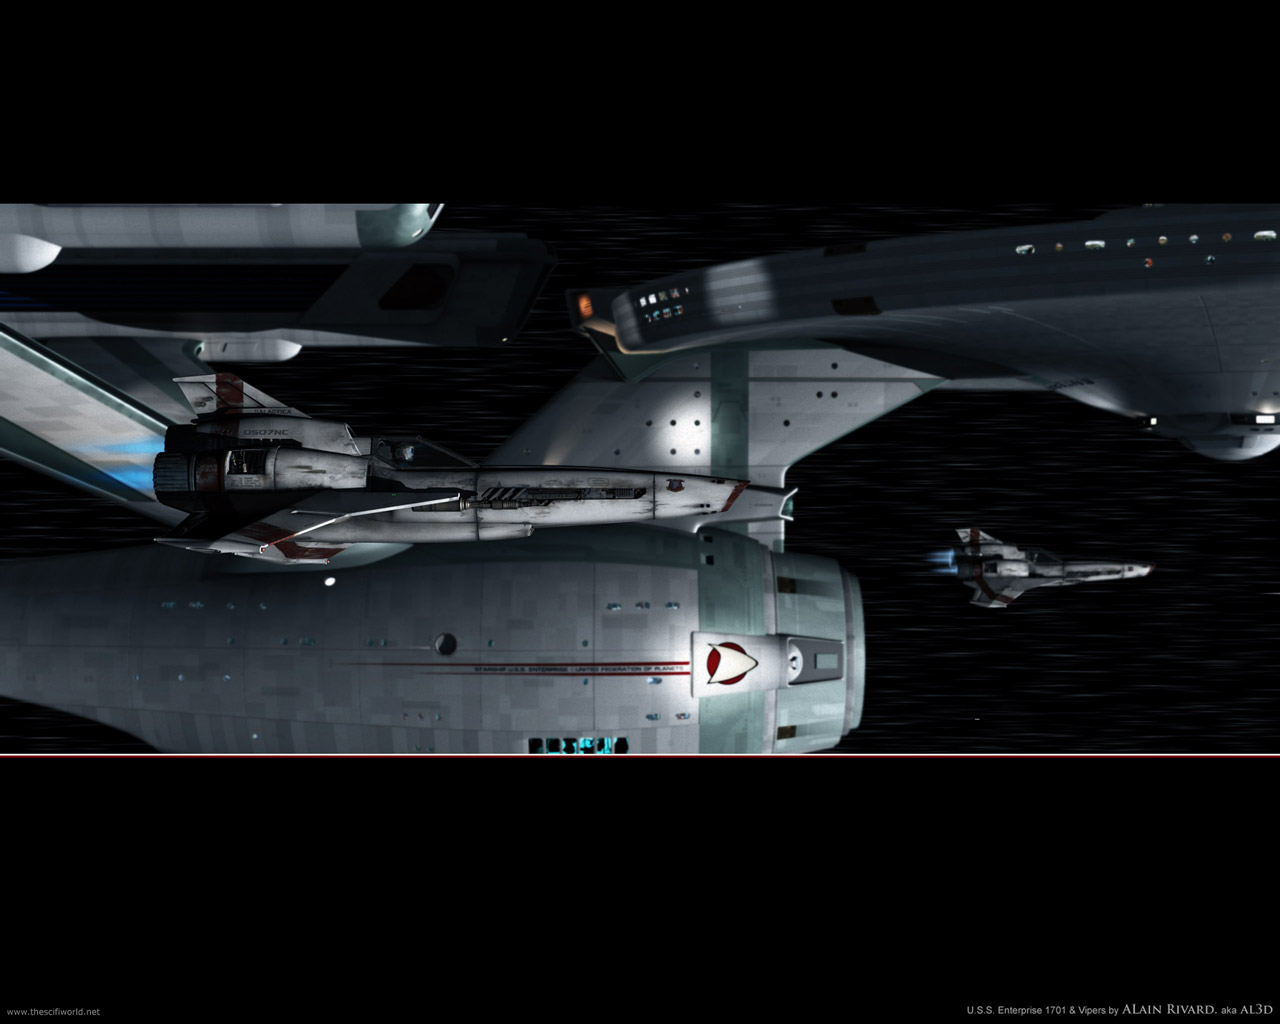 Science Fiction wallpapers wallpaper images TV shows sci fi pictures 1280x1024